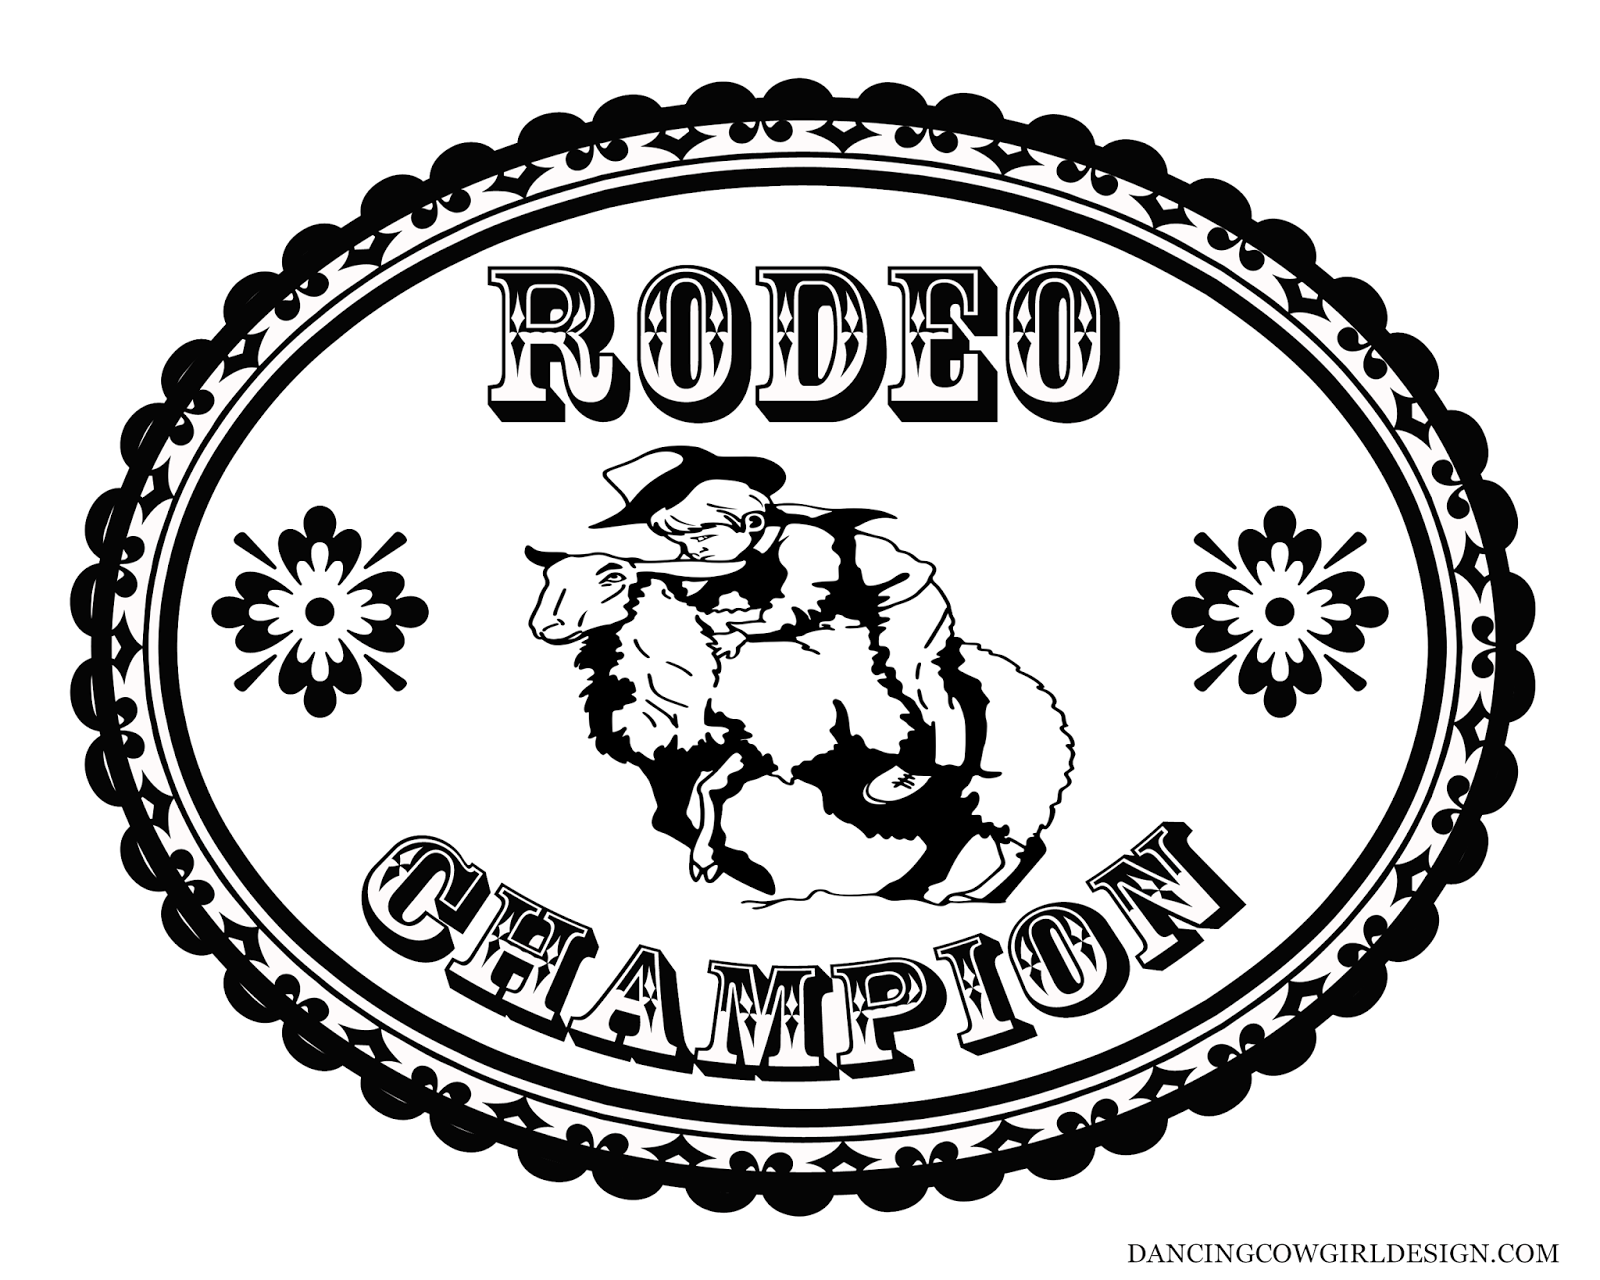 RODEO COLORING PAGES: Coloring Sheet Kid Rodeo Mutton Bustin\' Belt ...